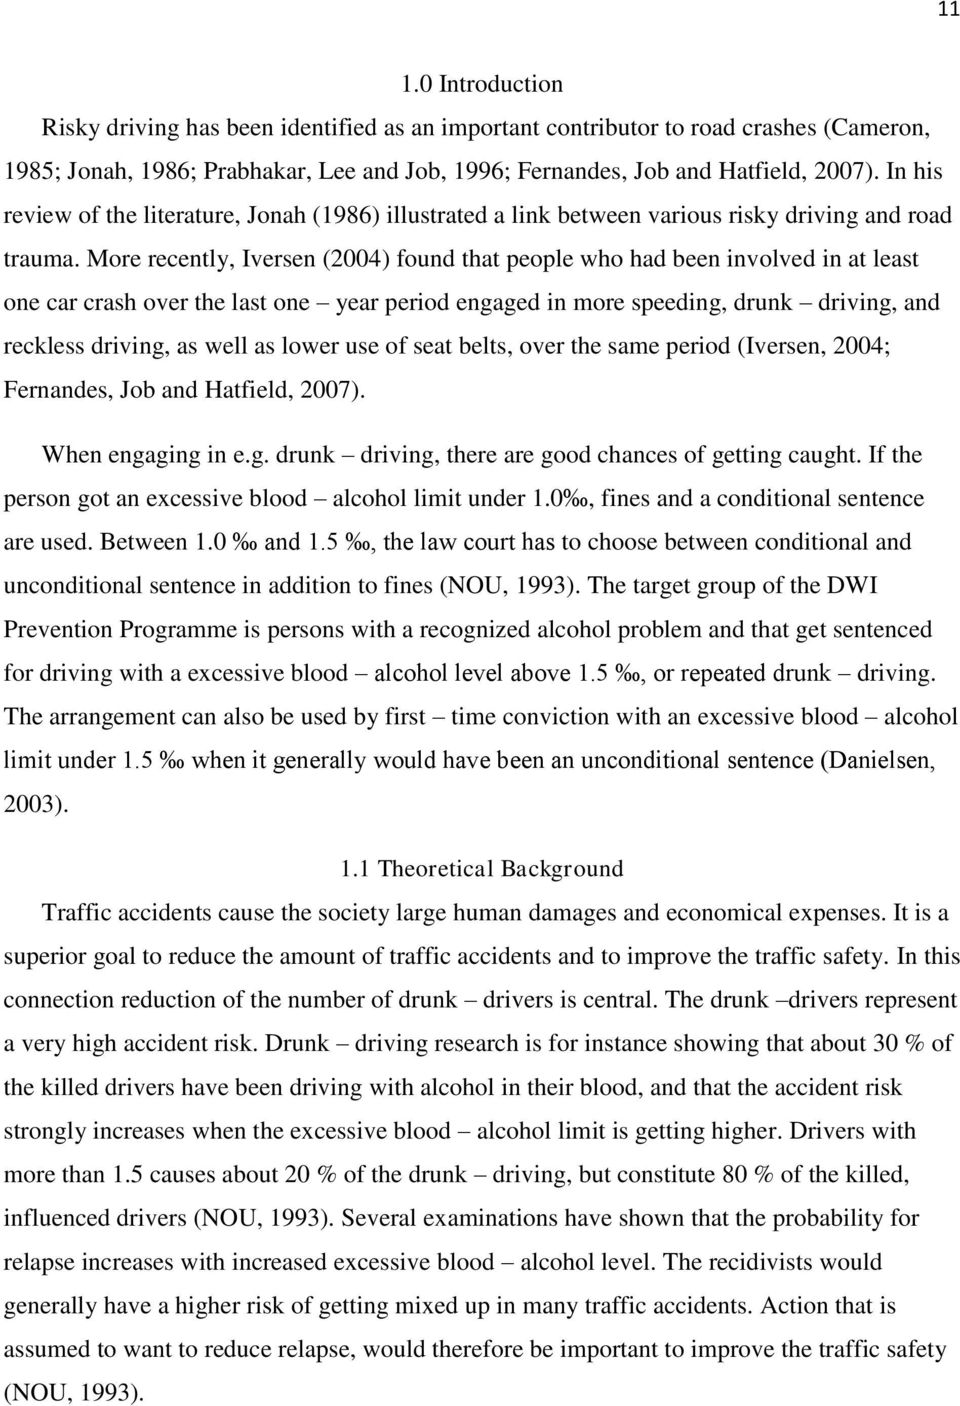 More recently, Iversen (2004) found that people who had been involved in at least one car crash over the last one year period engaged in more speeding, drunk driving, and reckless driving, as well as